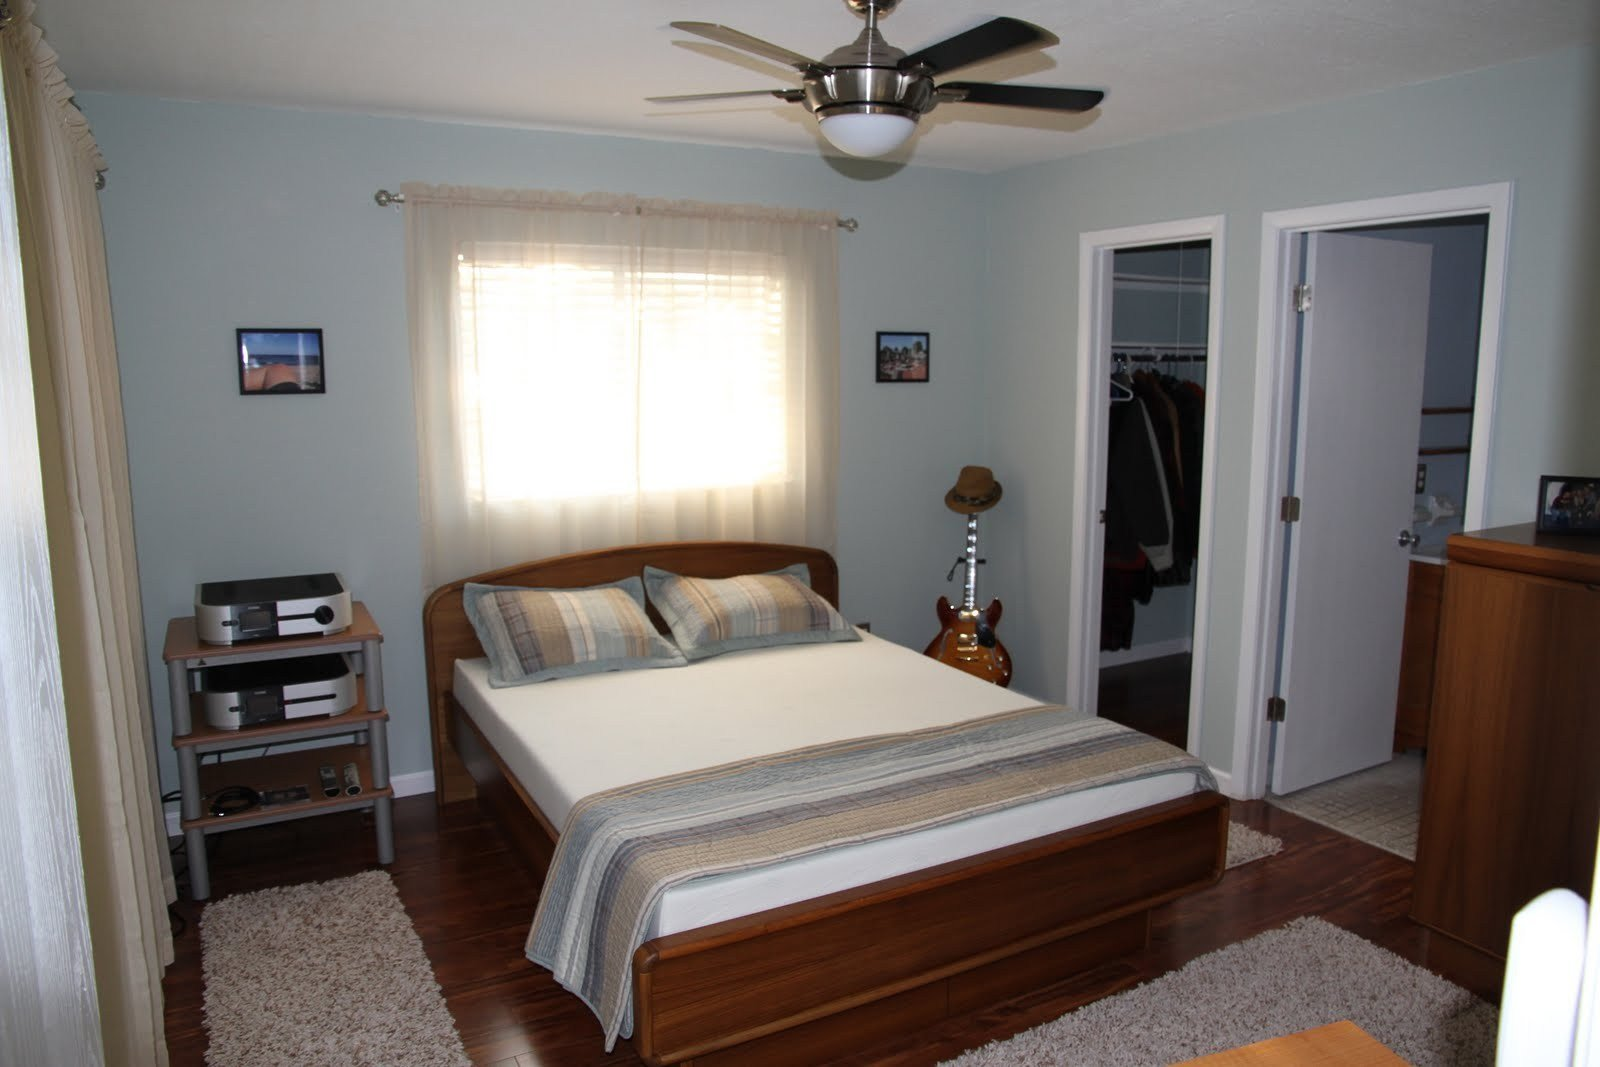 Best Room Arrangement For Small Bedroom How To Arrange A Small With Pictures